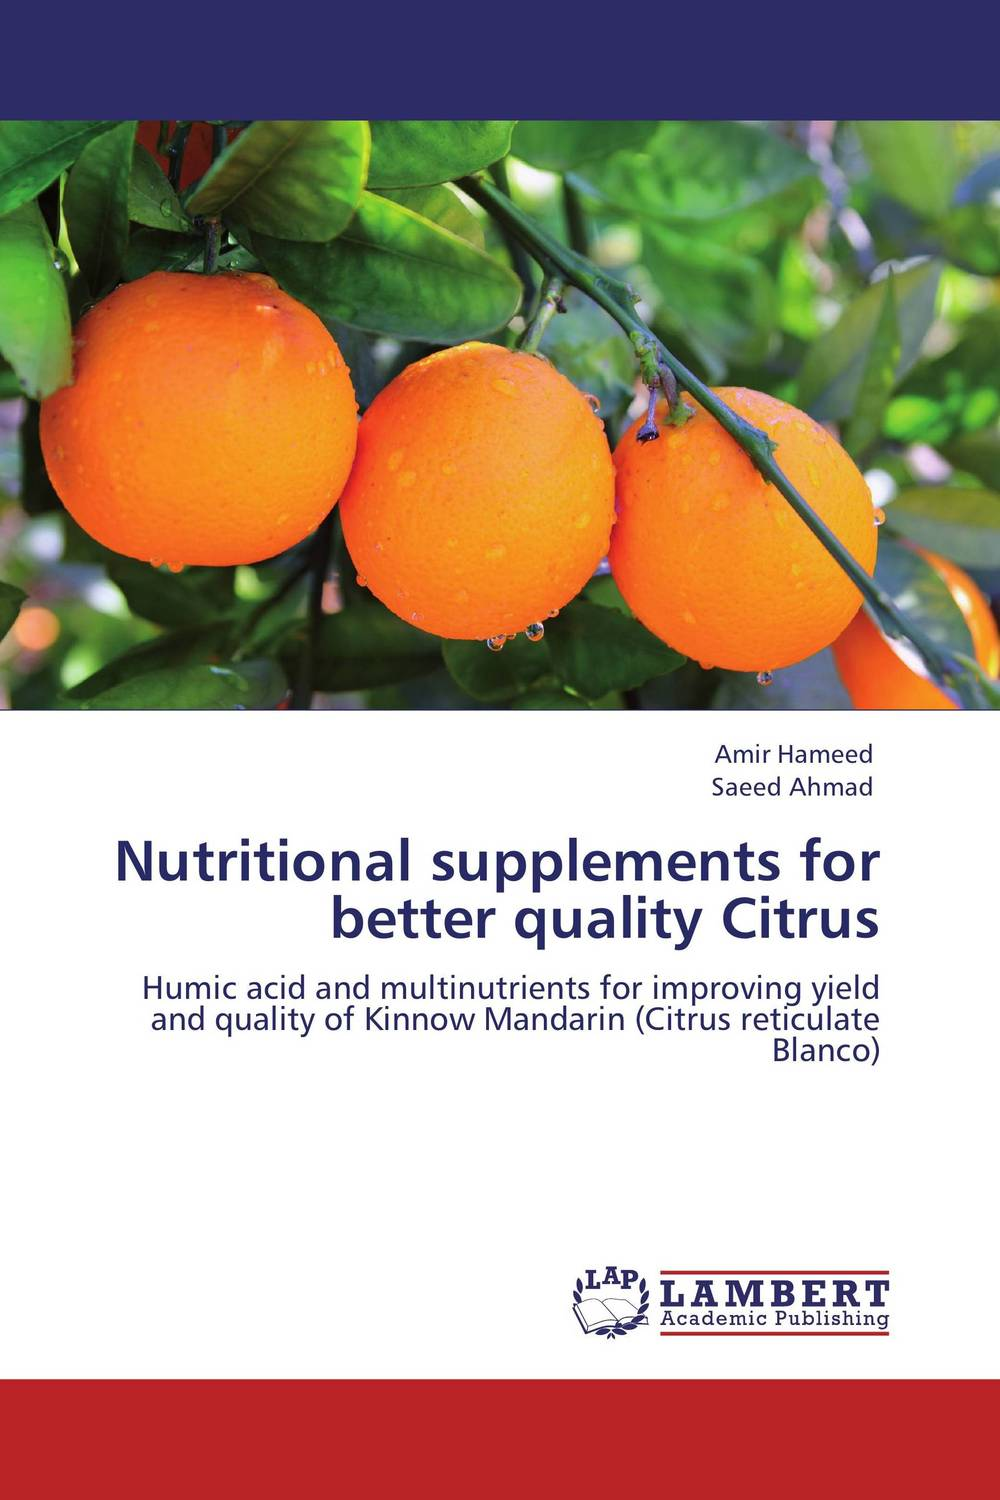 Nutritional supplements for better quality Citrus tissue culture of citrus reticulata blanco kinnow